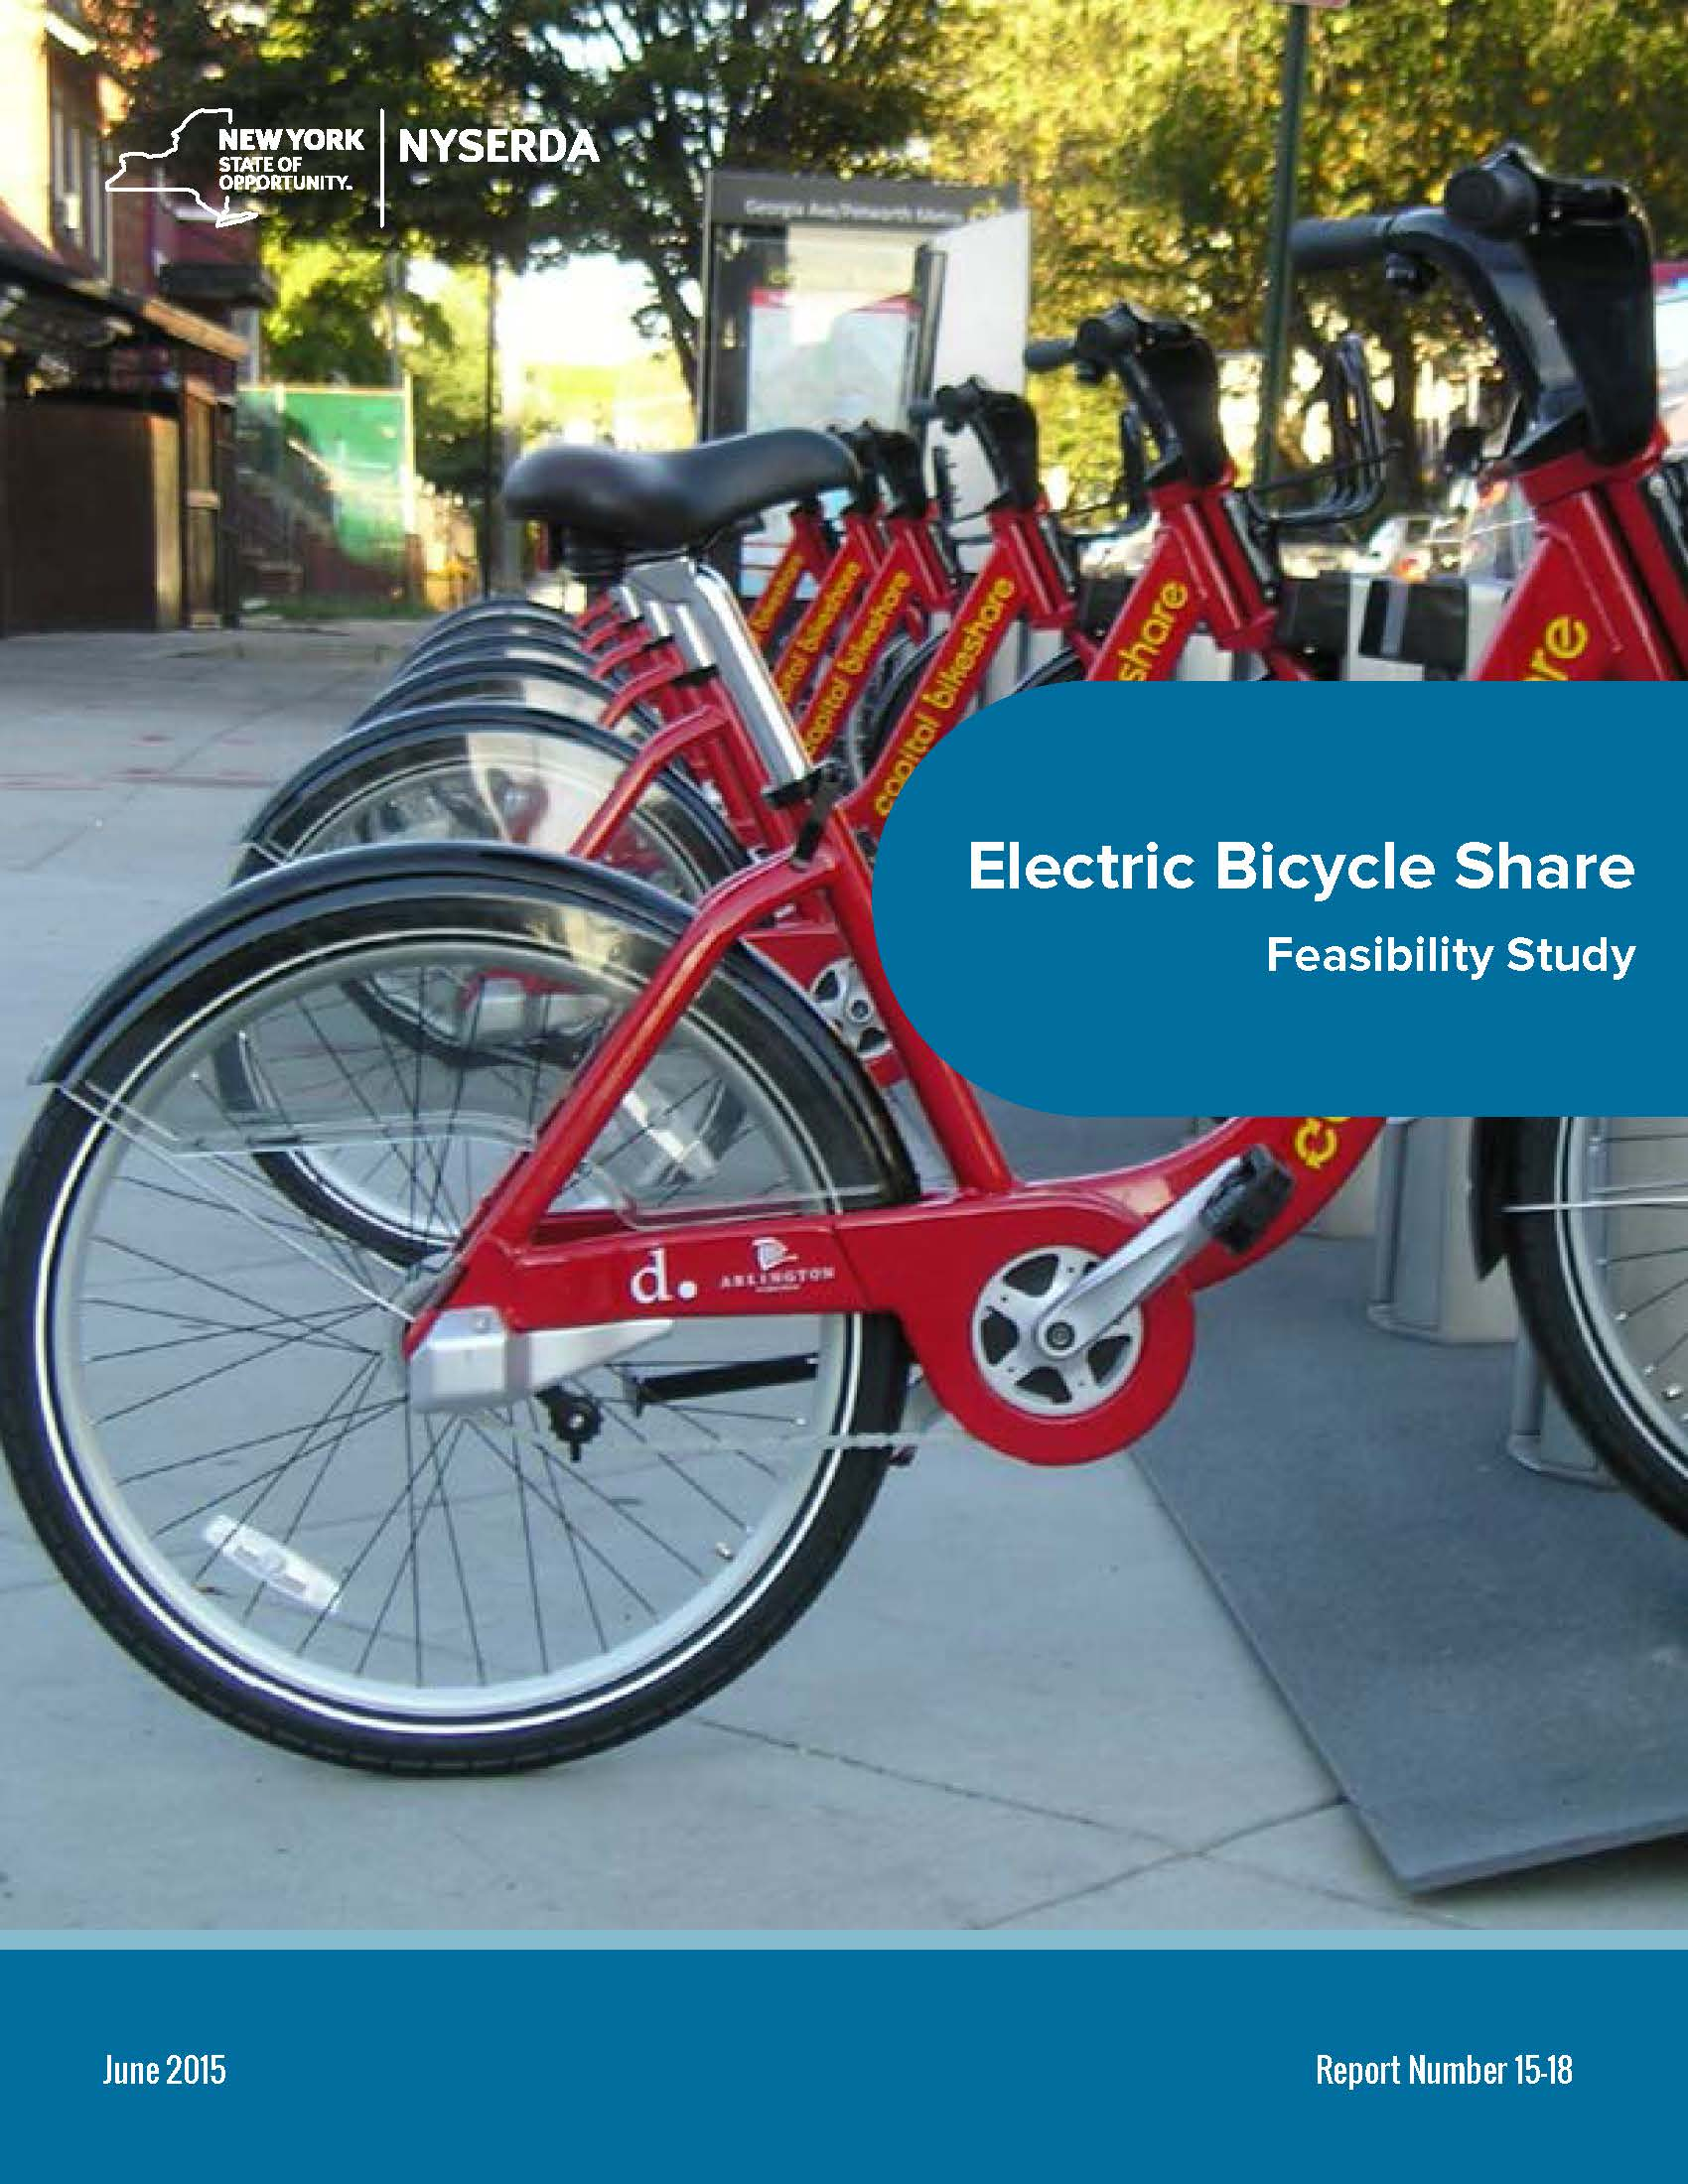 15-18-Electric-Bicycle-Share-Feasibility-StudyCover